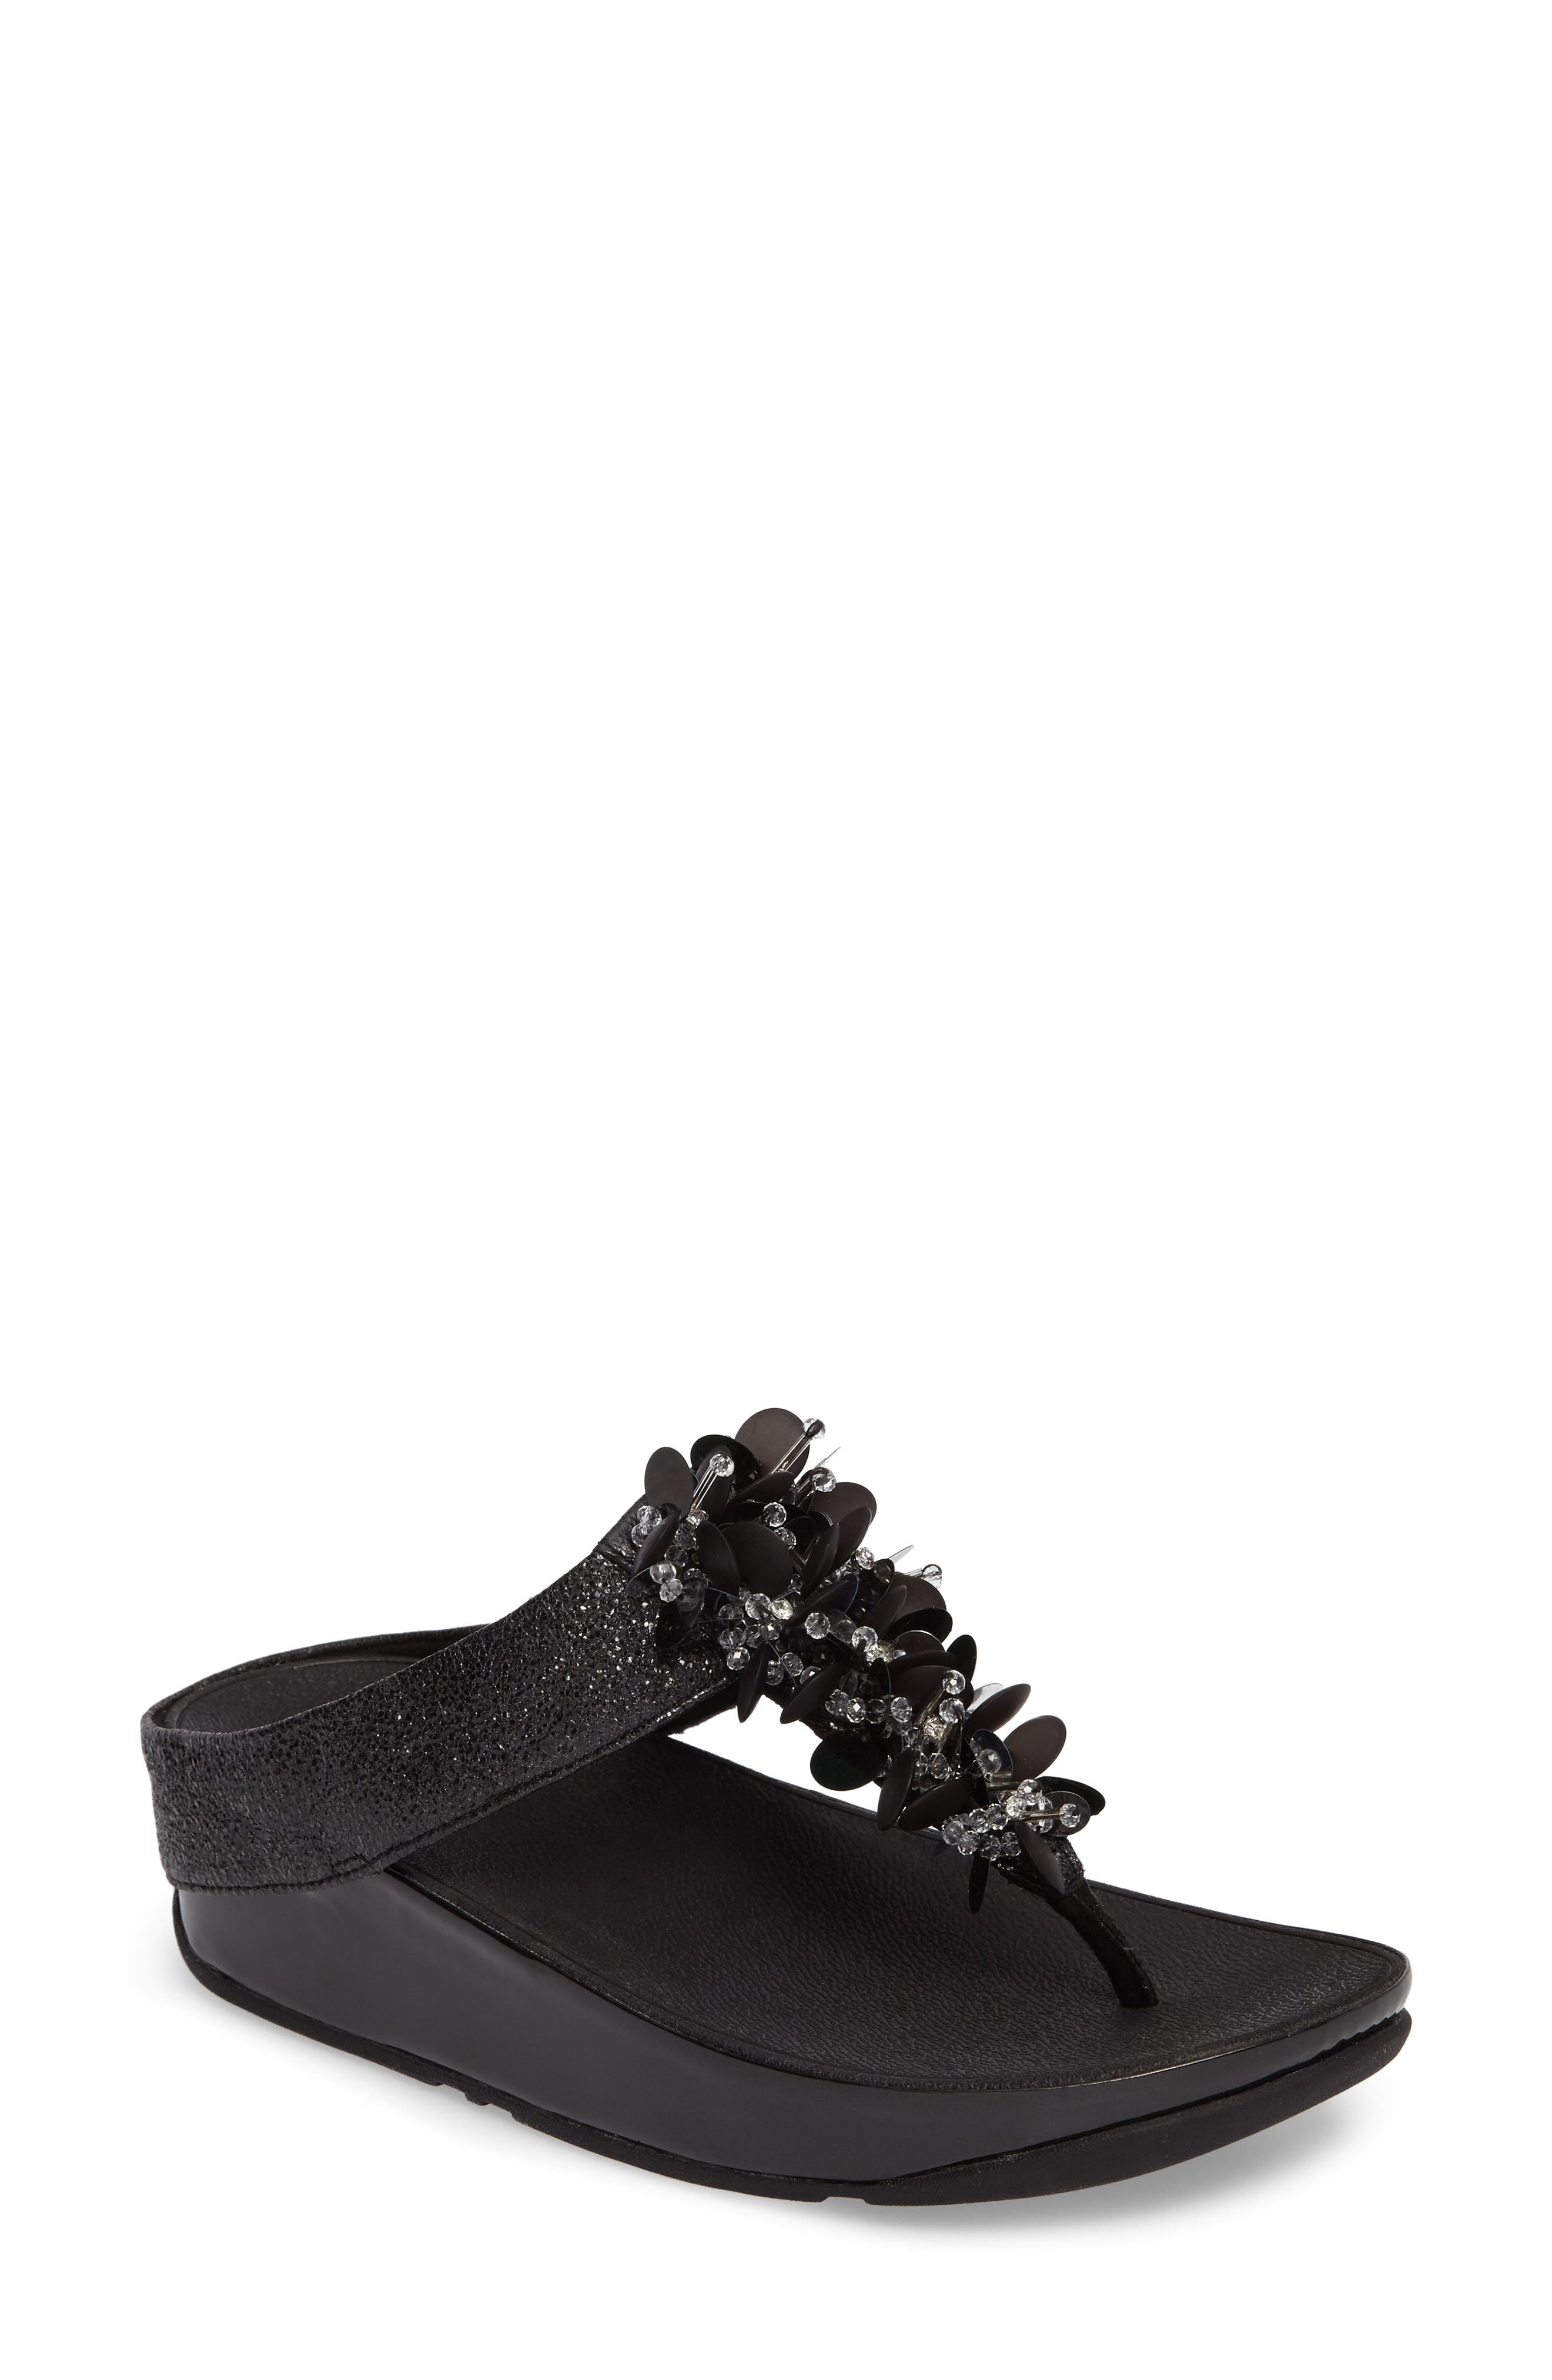 Alternate Image 1 Selected - FitFlop Boogaloo Sandal (Women)